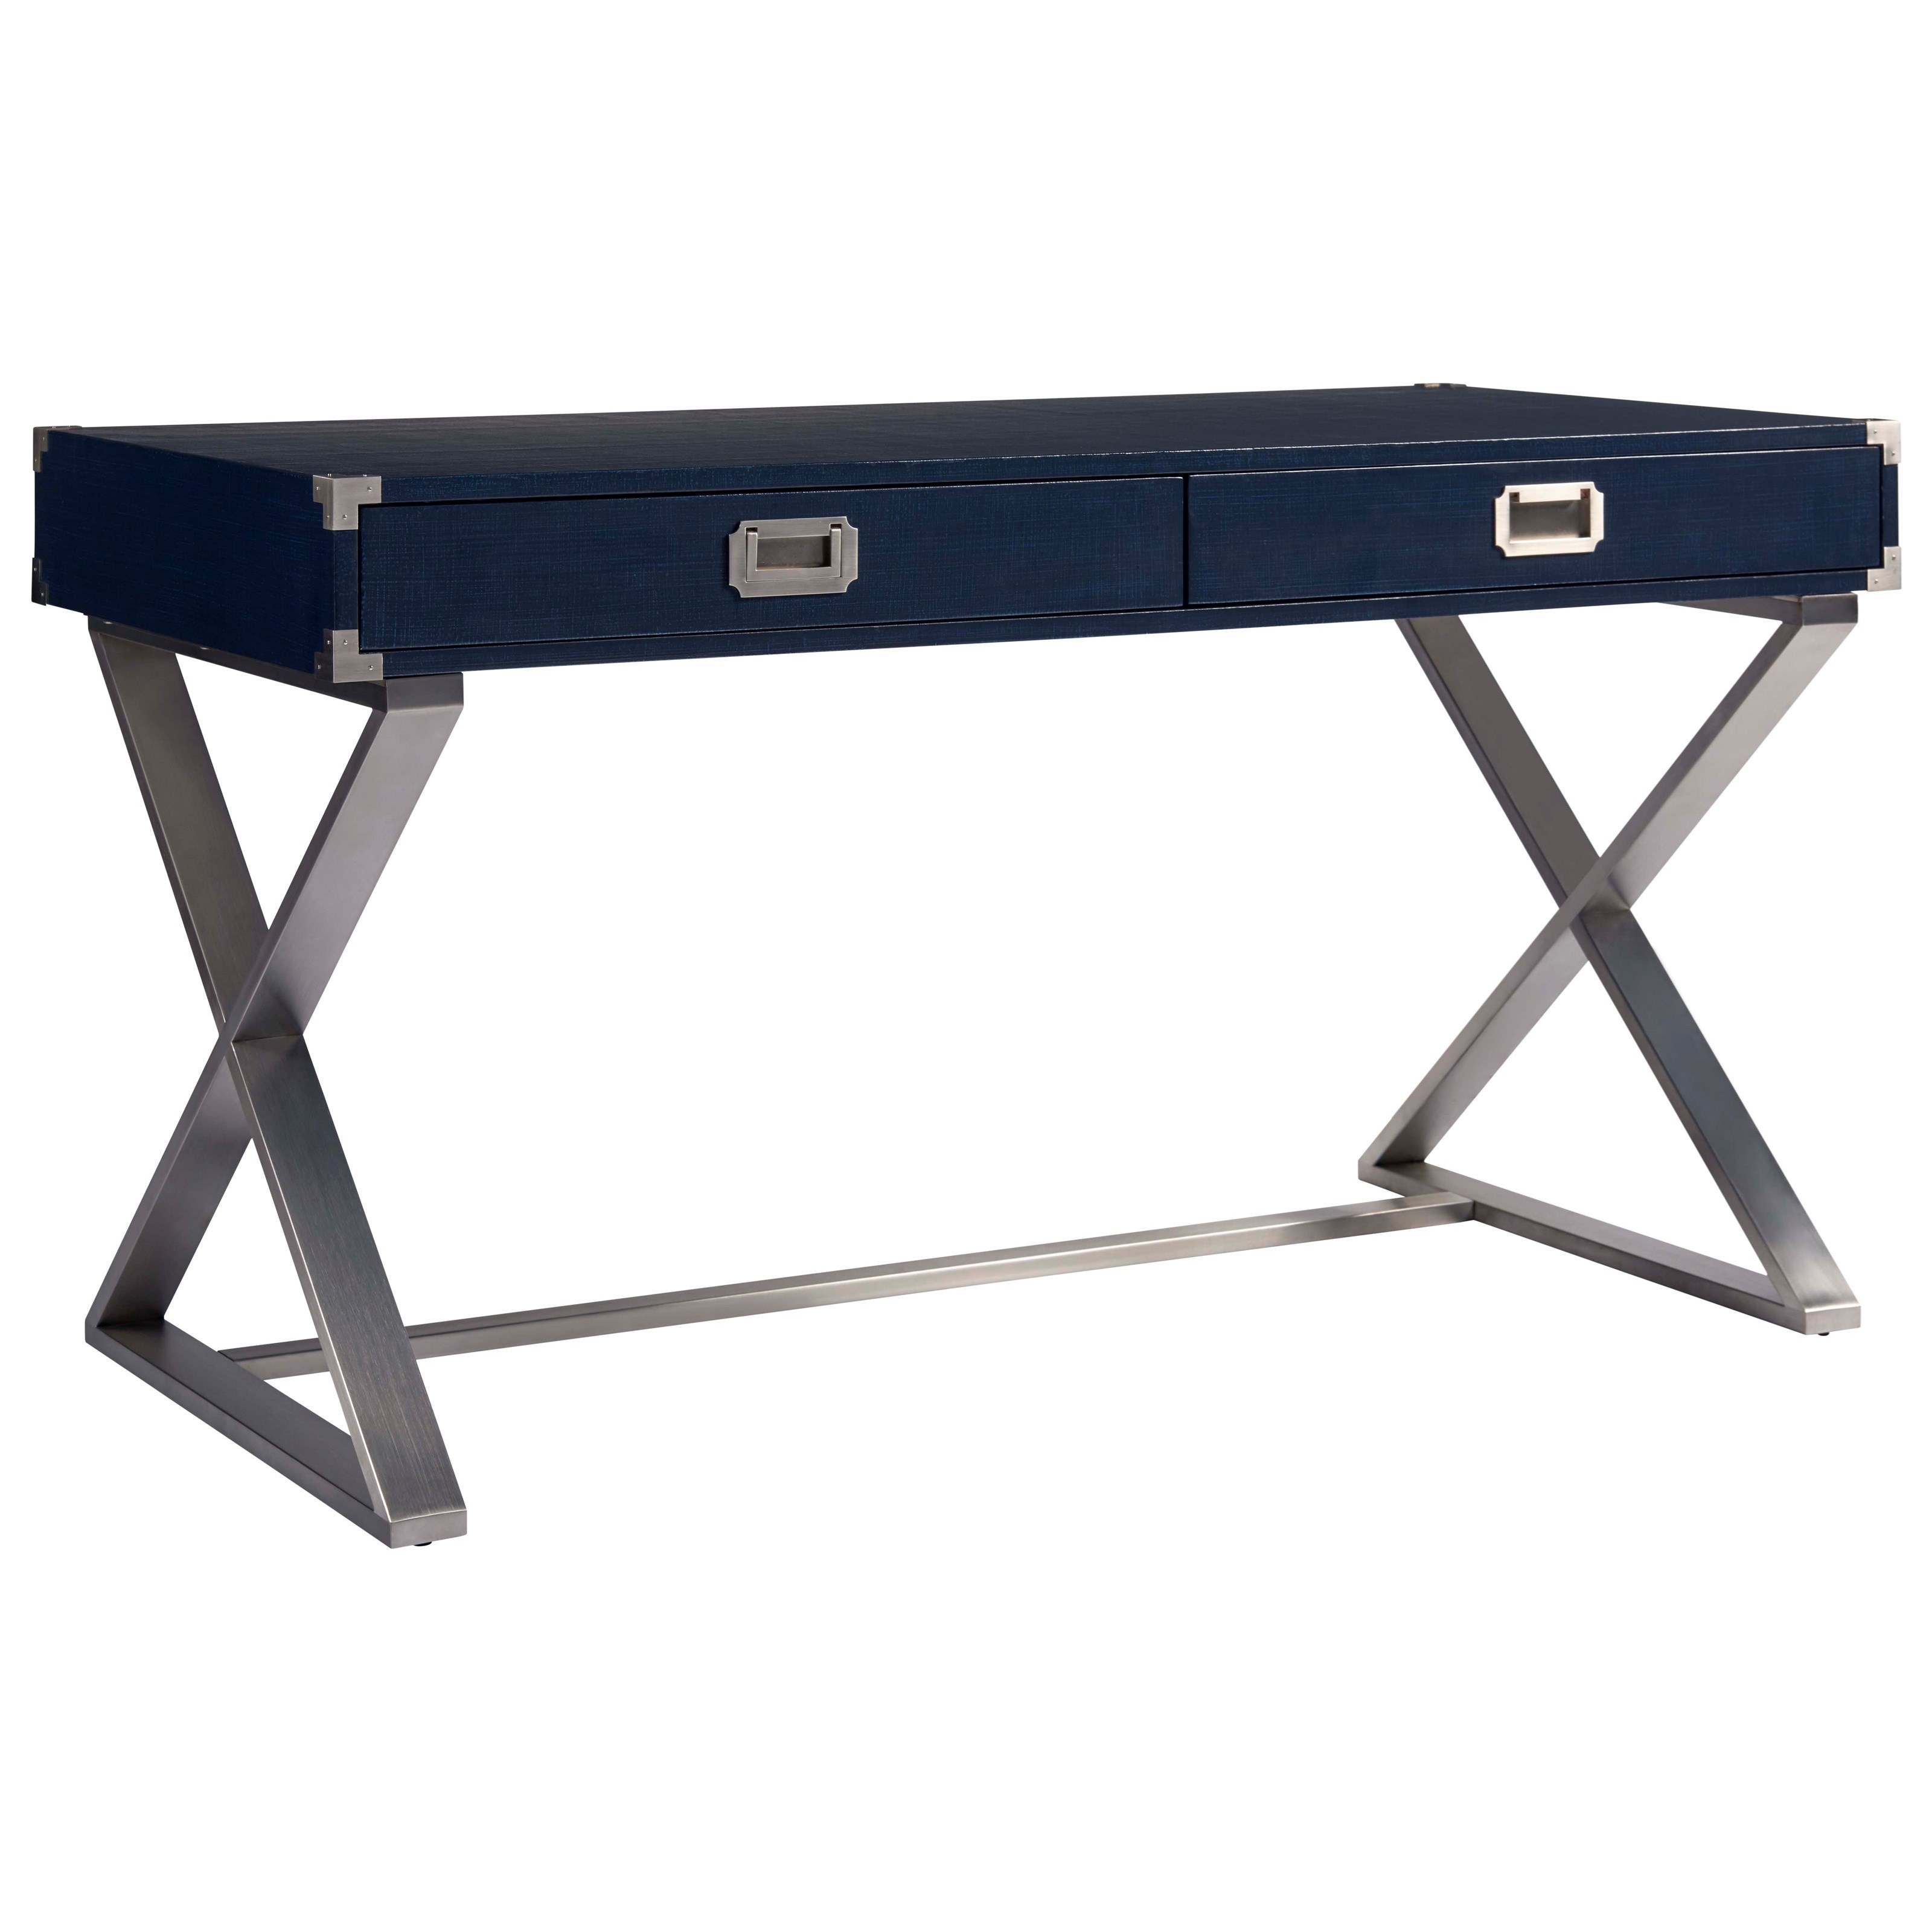 Coastal Living Home - Escape Postcard Writing Table by Universal at Baer's Furniture